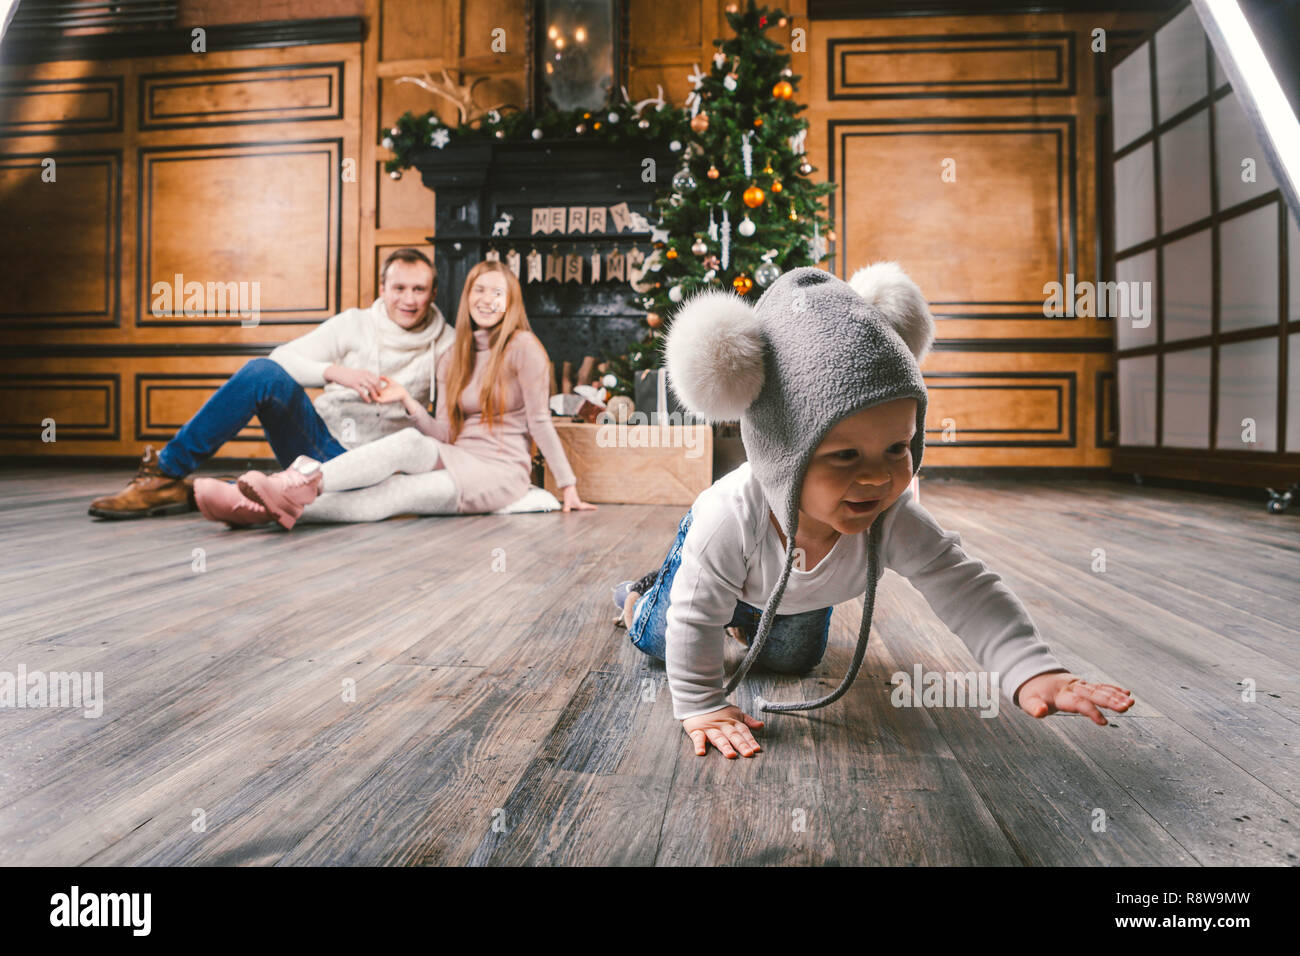 theme family holiday New Year and Christmas. Young caucasian family mom dad son 1 year sit wooden floor near fireplace christmas tree on Christmas eve - Stock Image